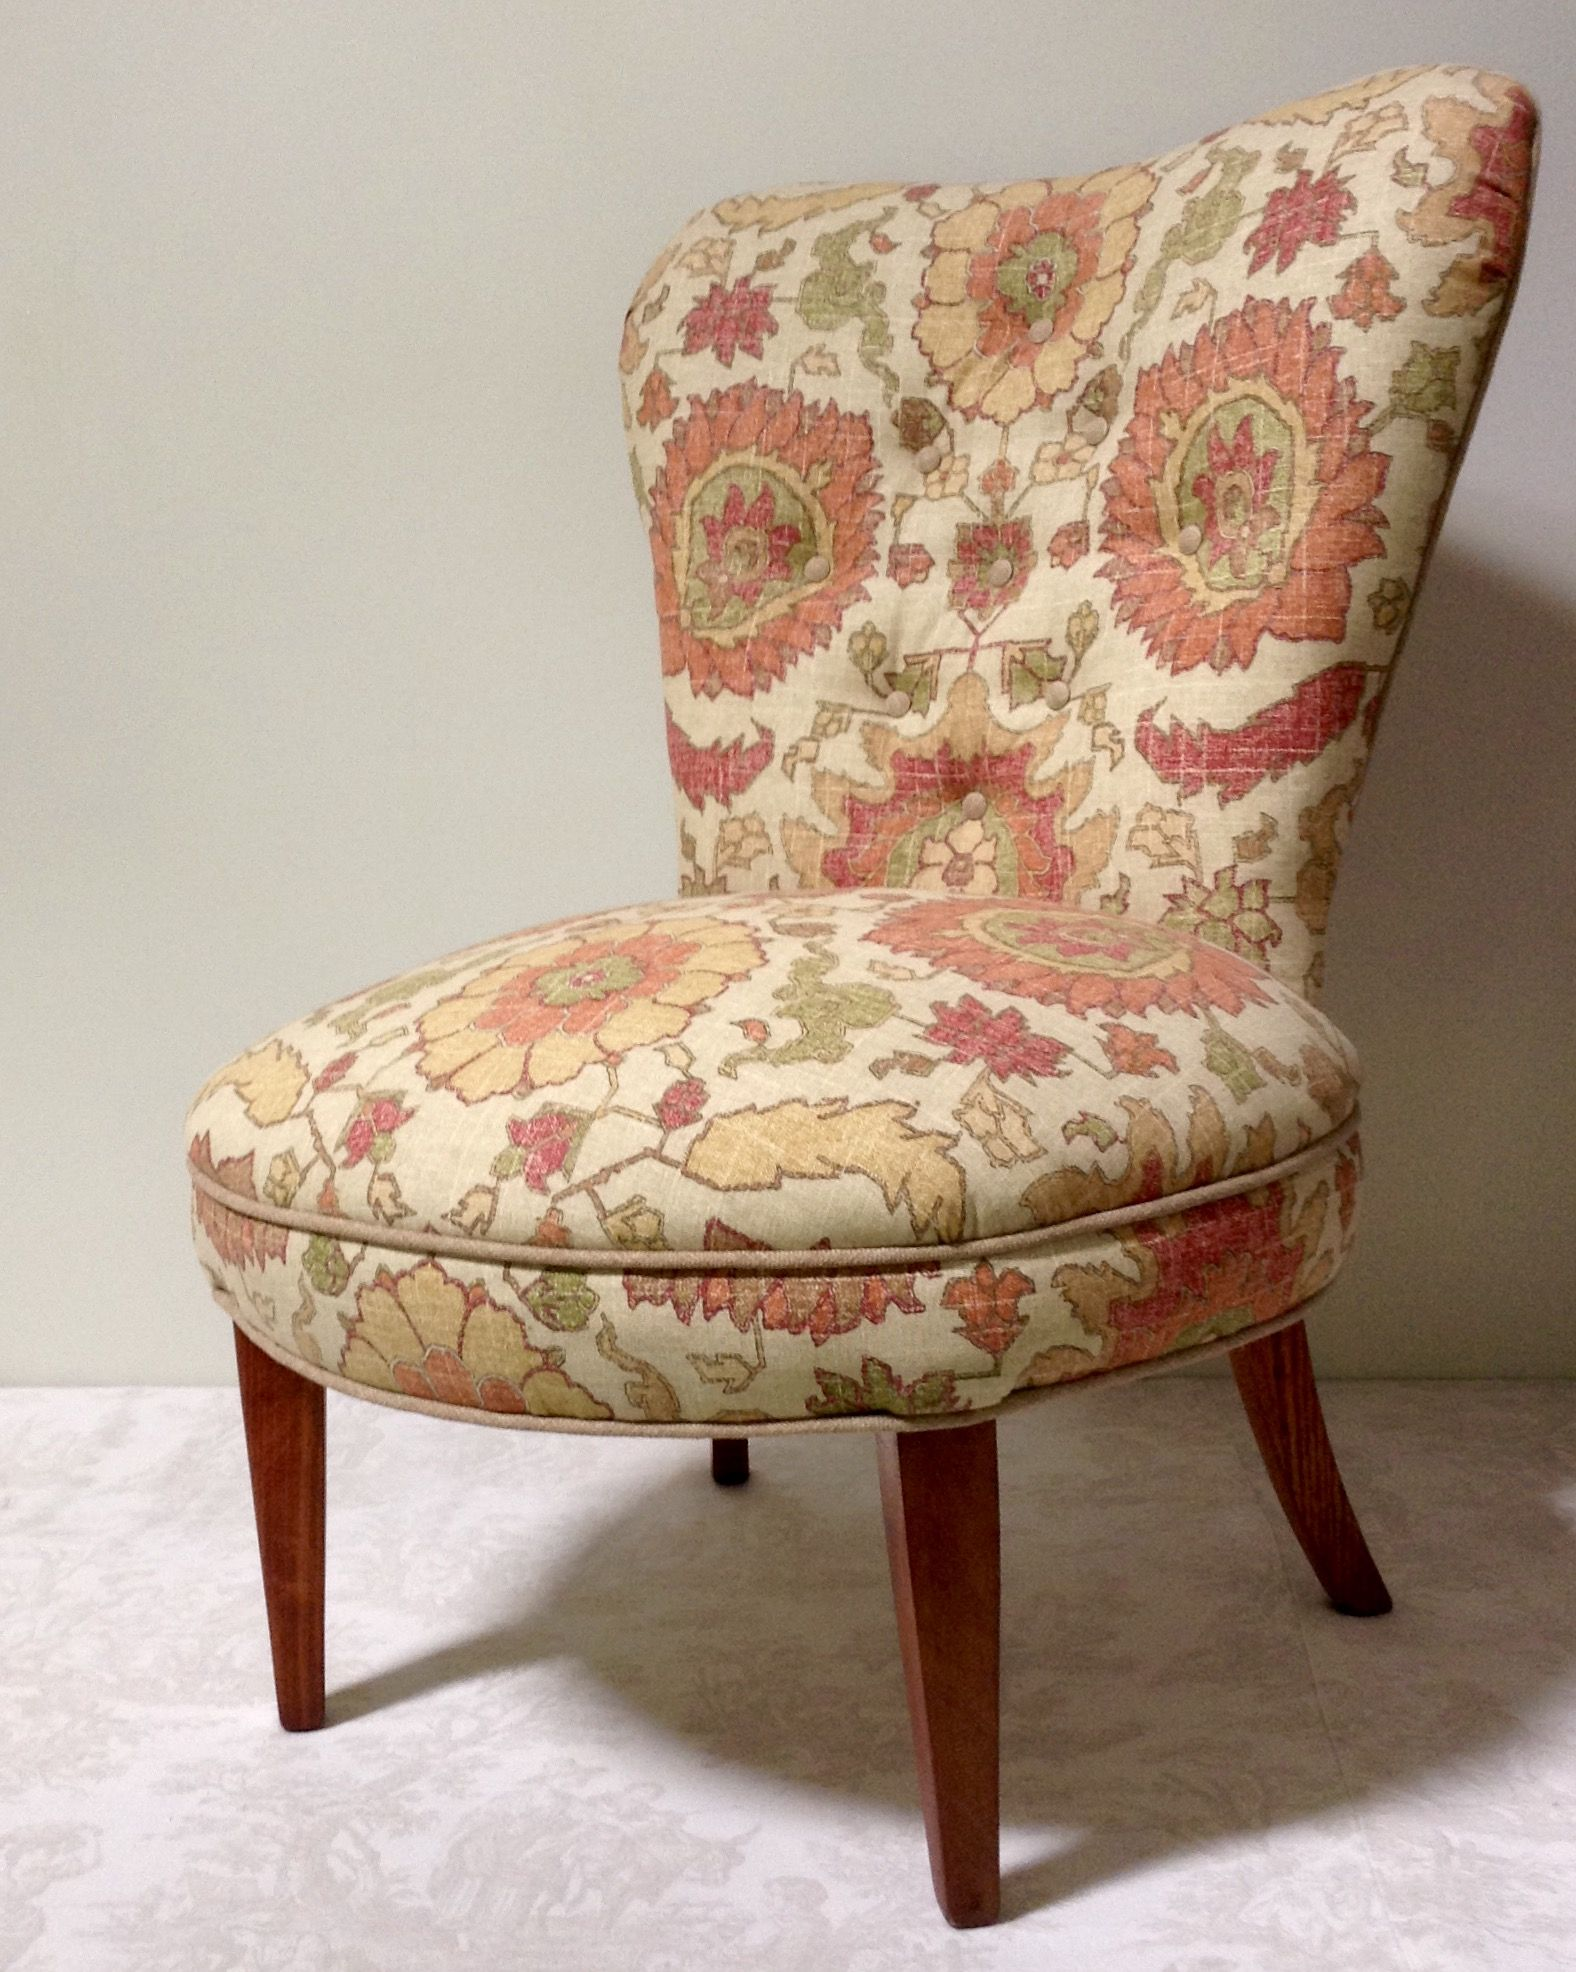 One of a kind. This chair's frame was hand made by a hobbyist way back when. It had Spanish Moss and wood shavings for padding!